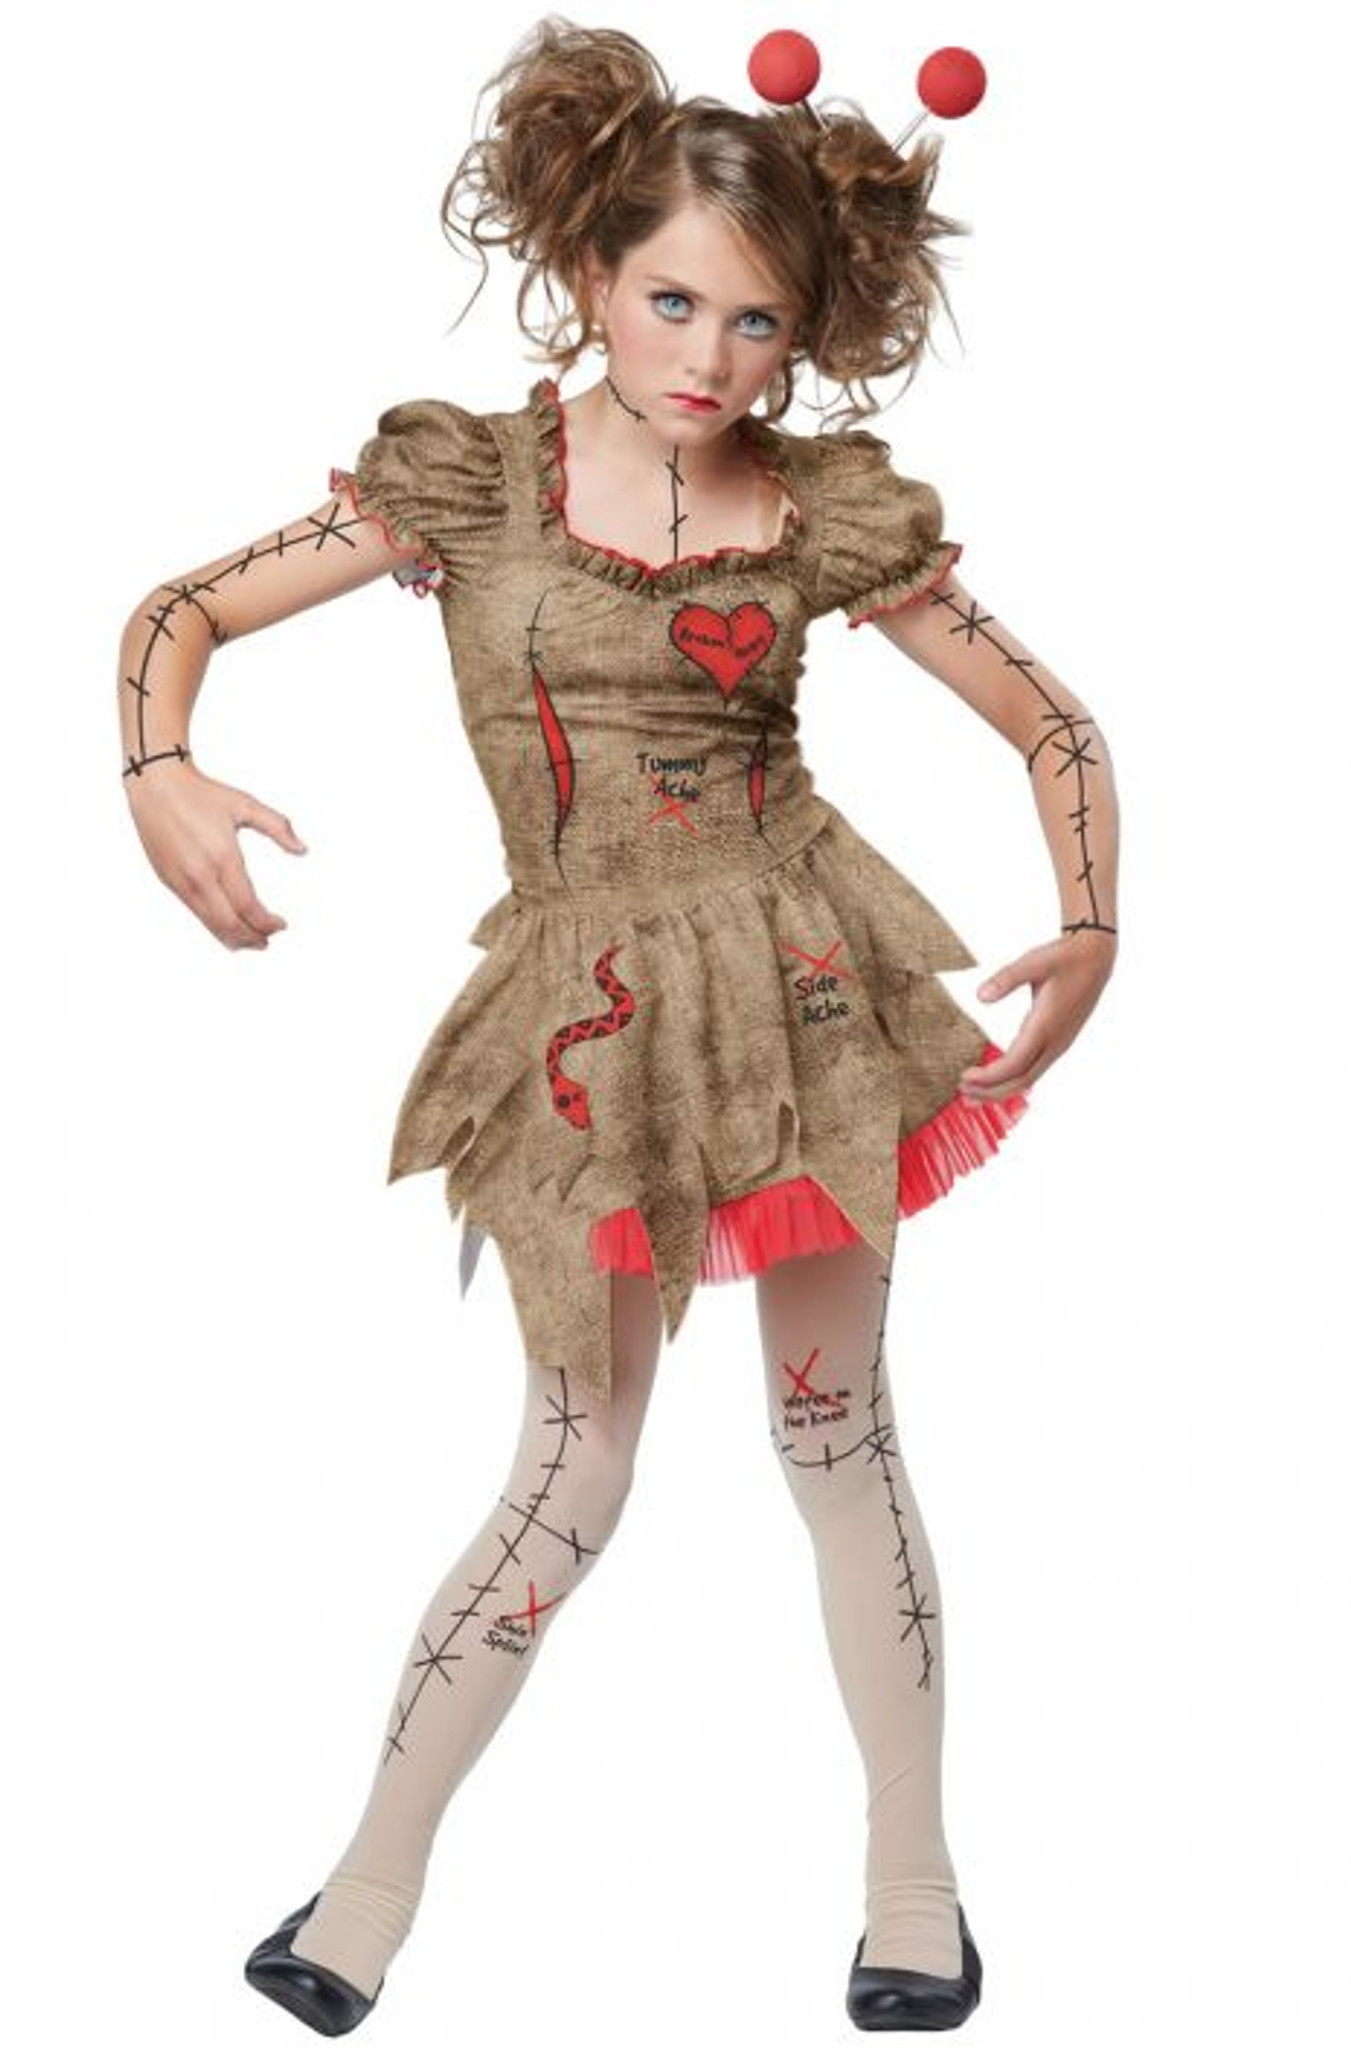 Voodoo Dolly Tween Costume with Clip-On Safety Light Included